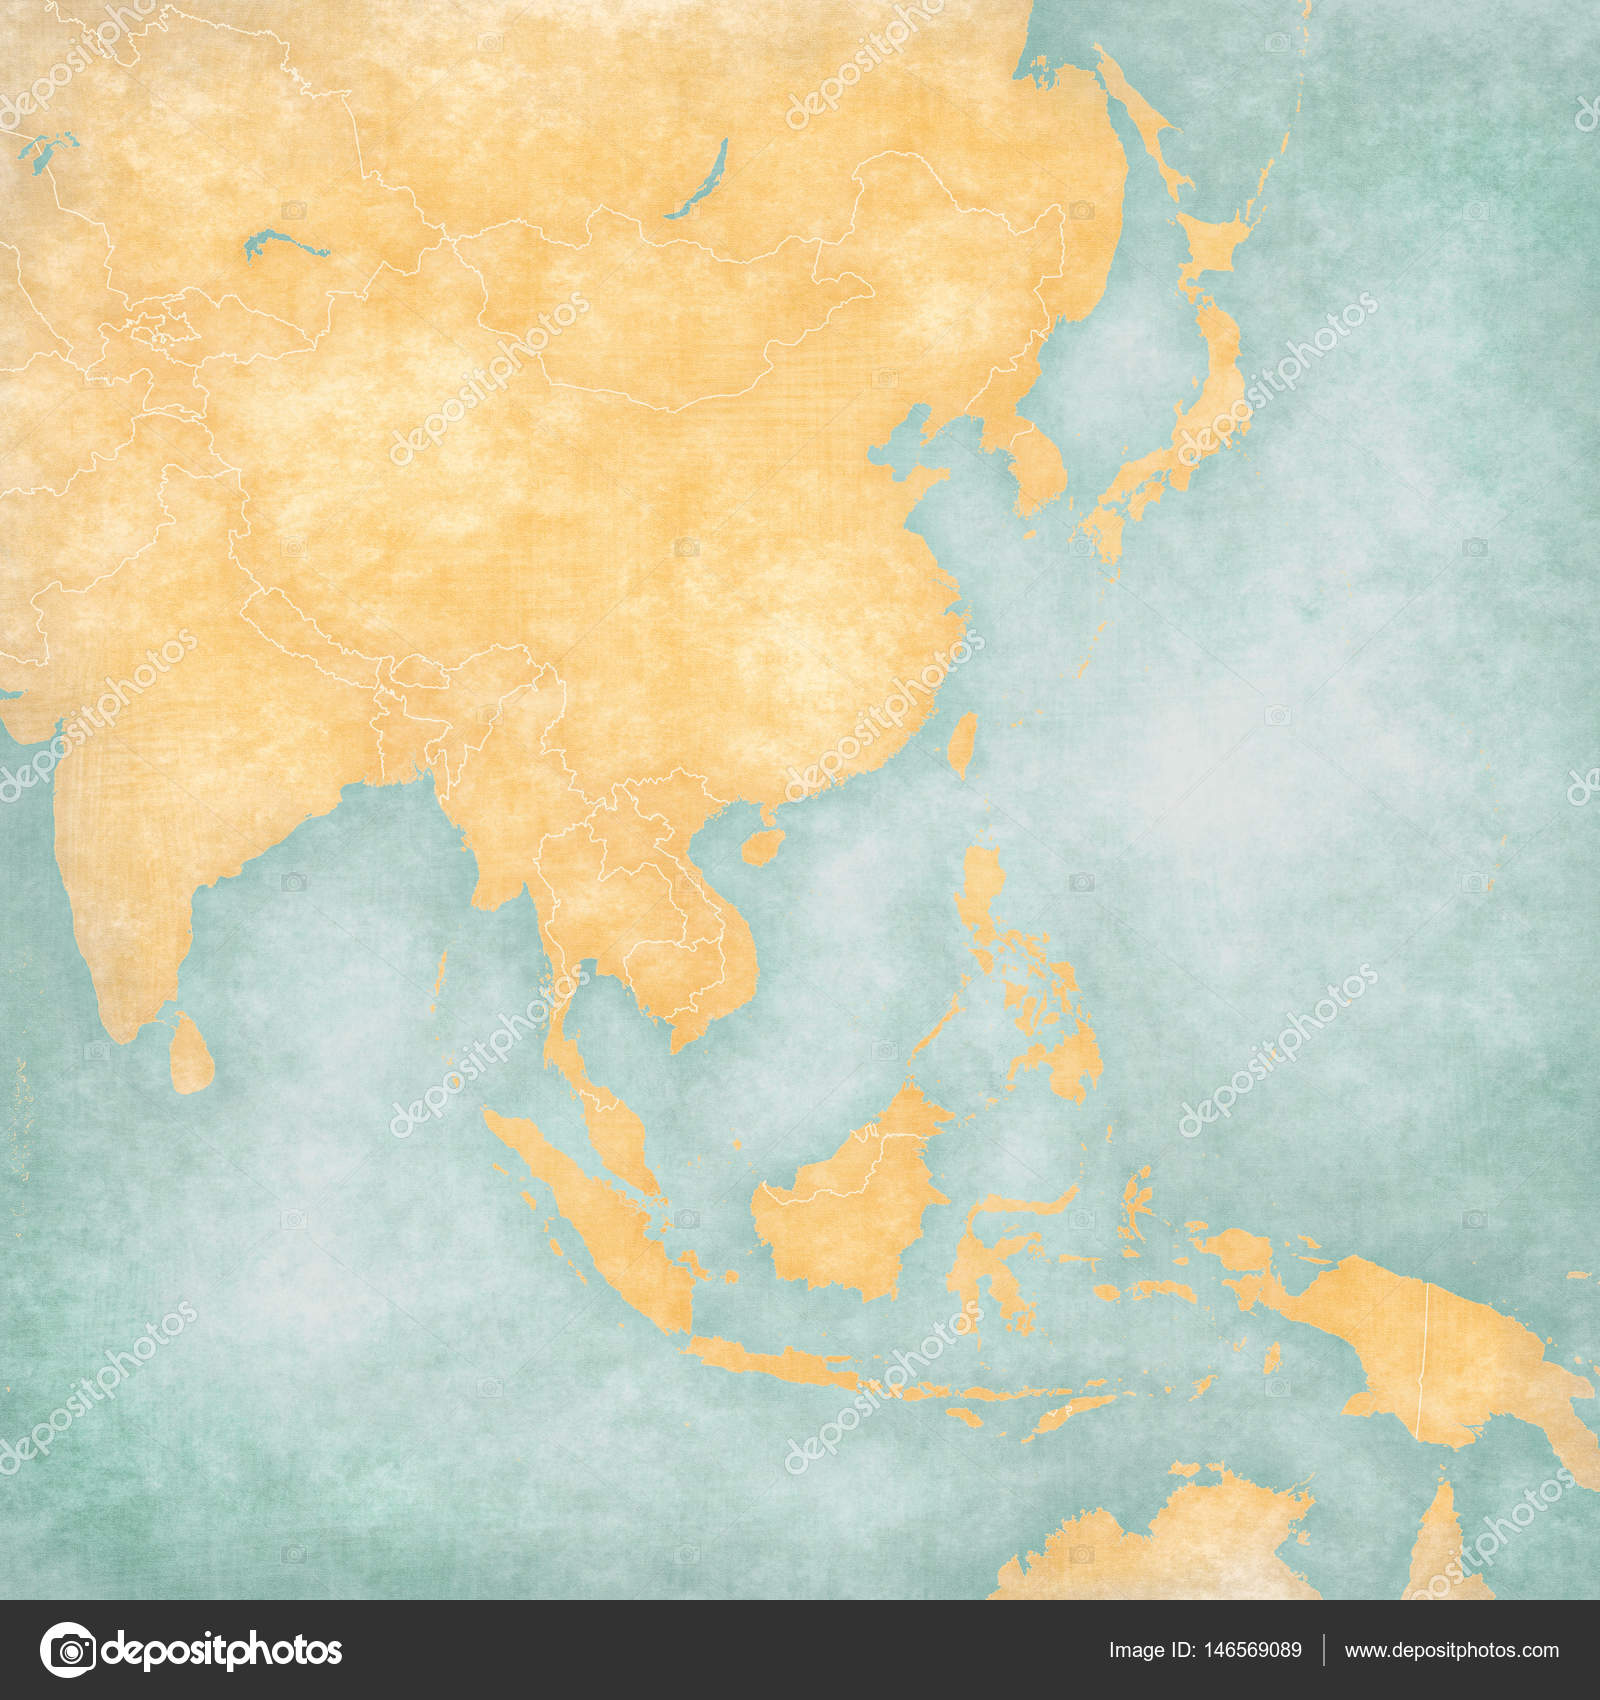 Blank Map Of East And Southeast Asia.Map Of East Asia Blank Map Stock Photo C Tindo 146569089